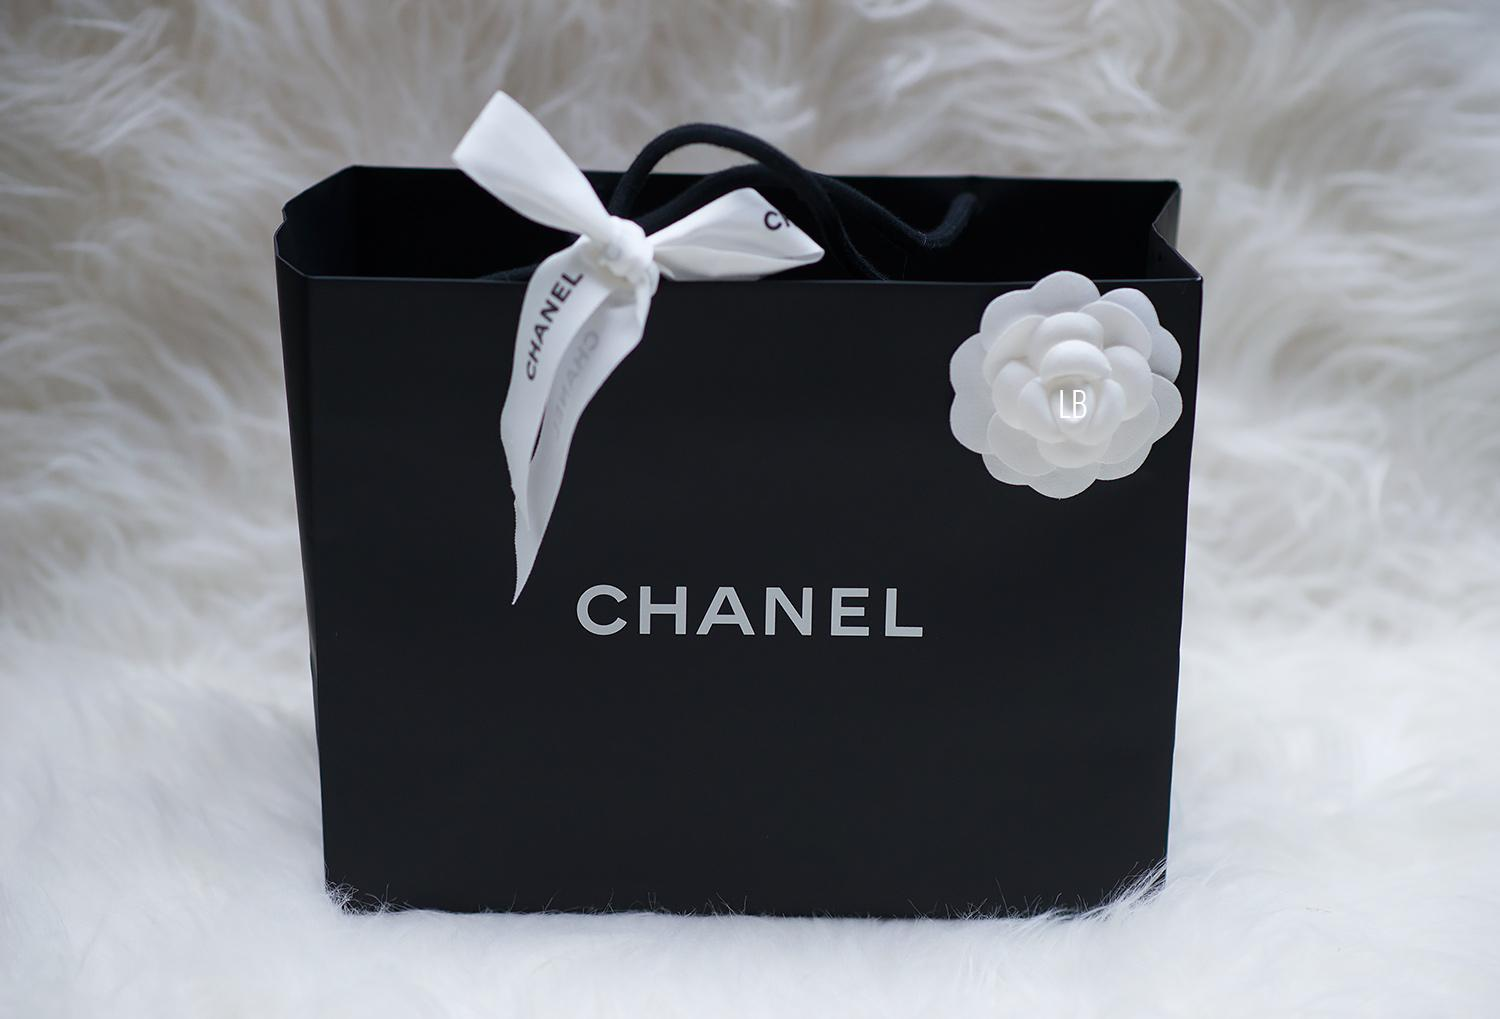 acec5c9482b8 My New Chanel Wallet On Chain 'WOC' Bag In Black | Raindrops of Sapphire